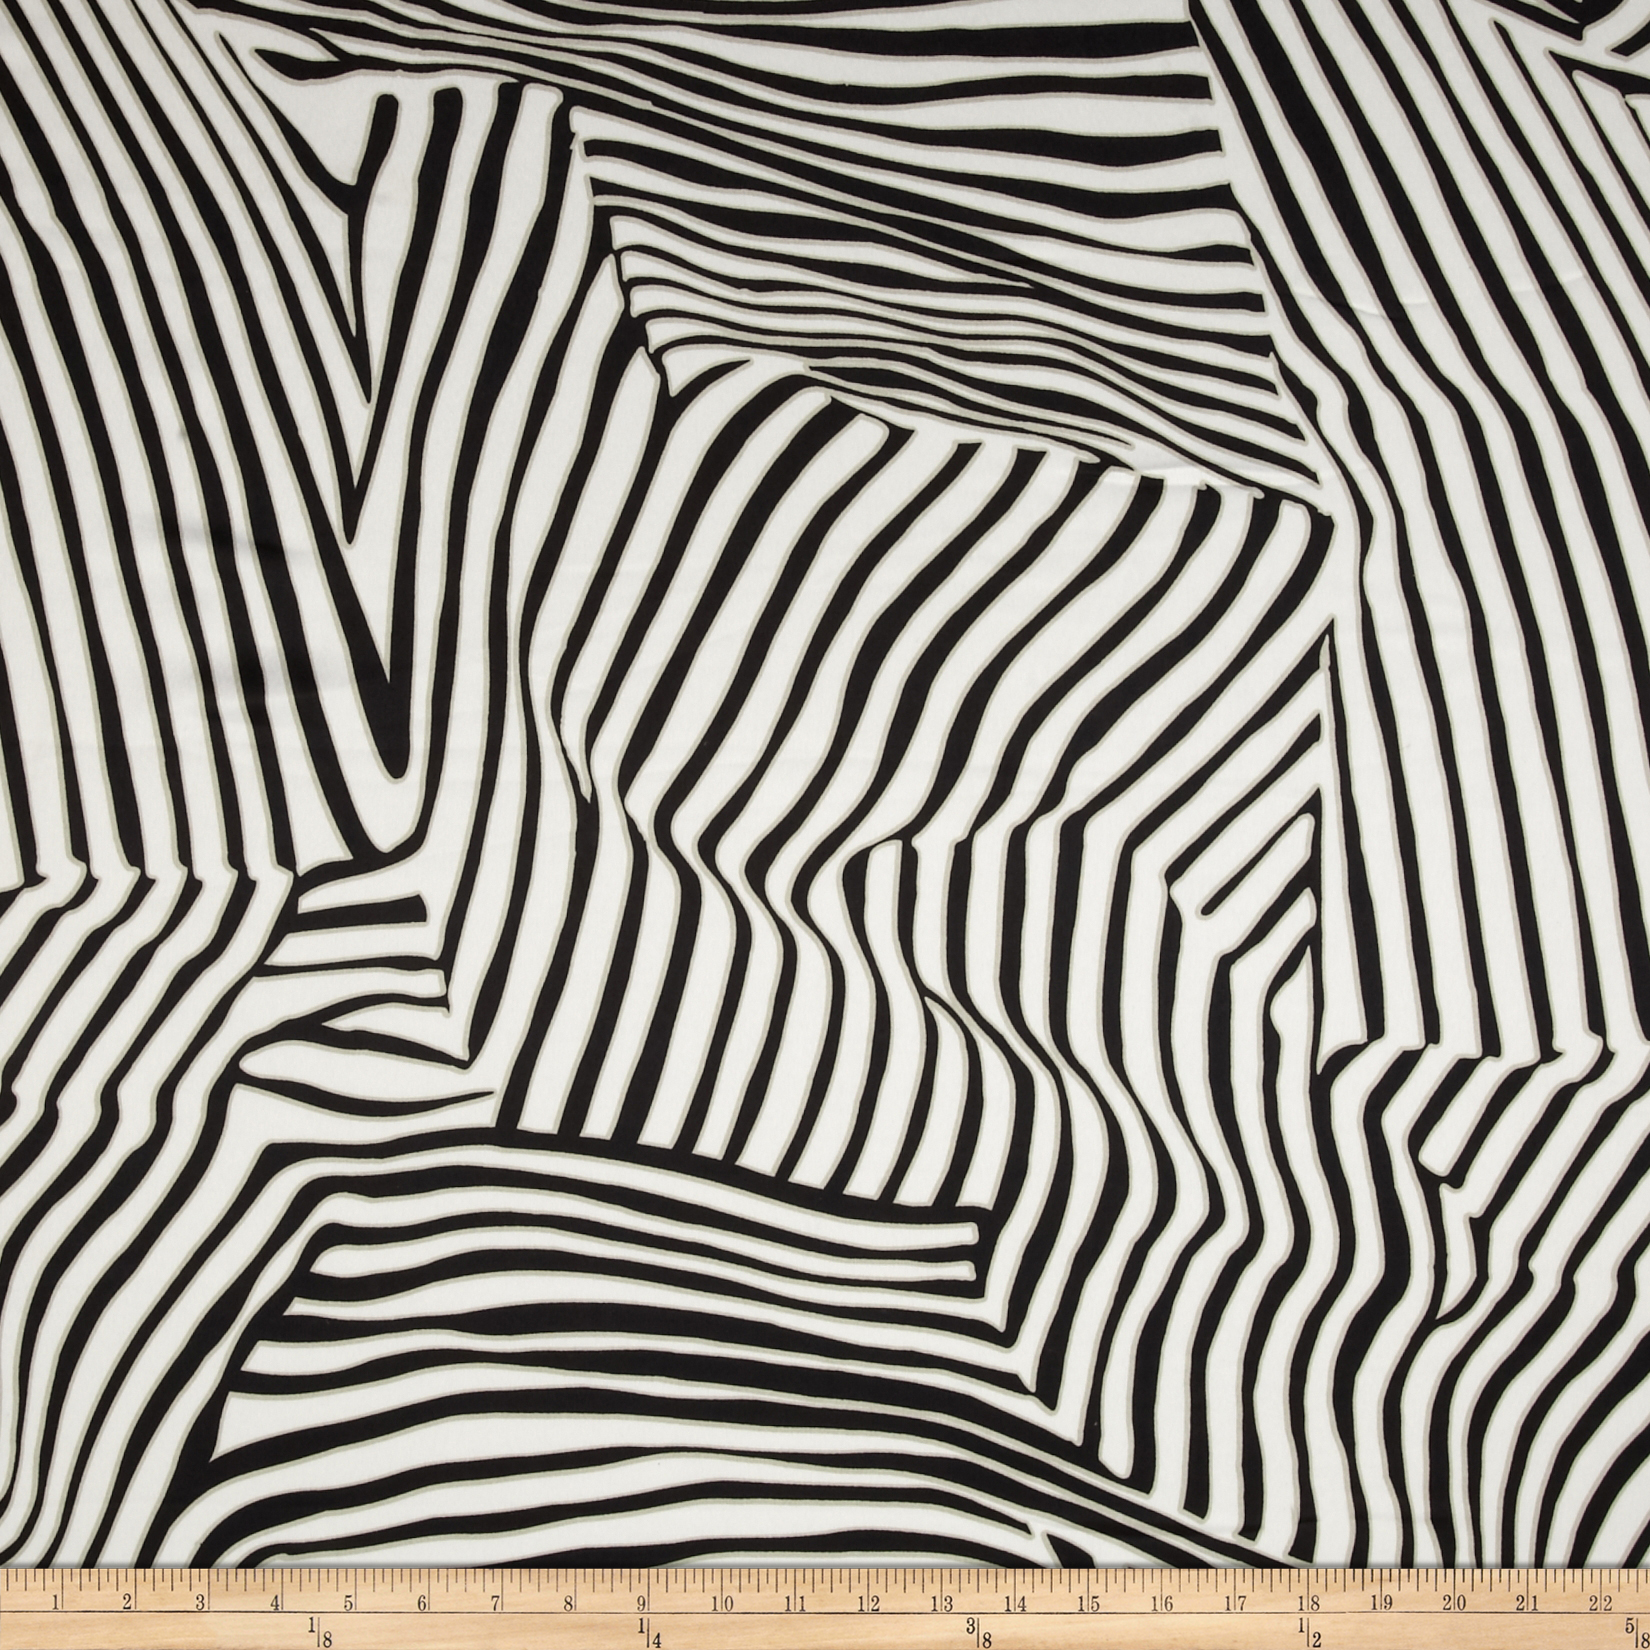 San Tropez Shirting Black/White Fabric